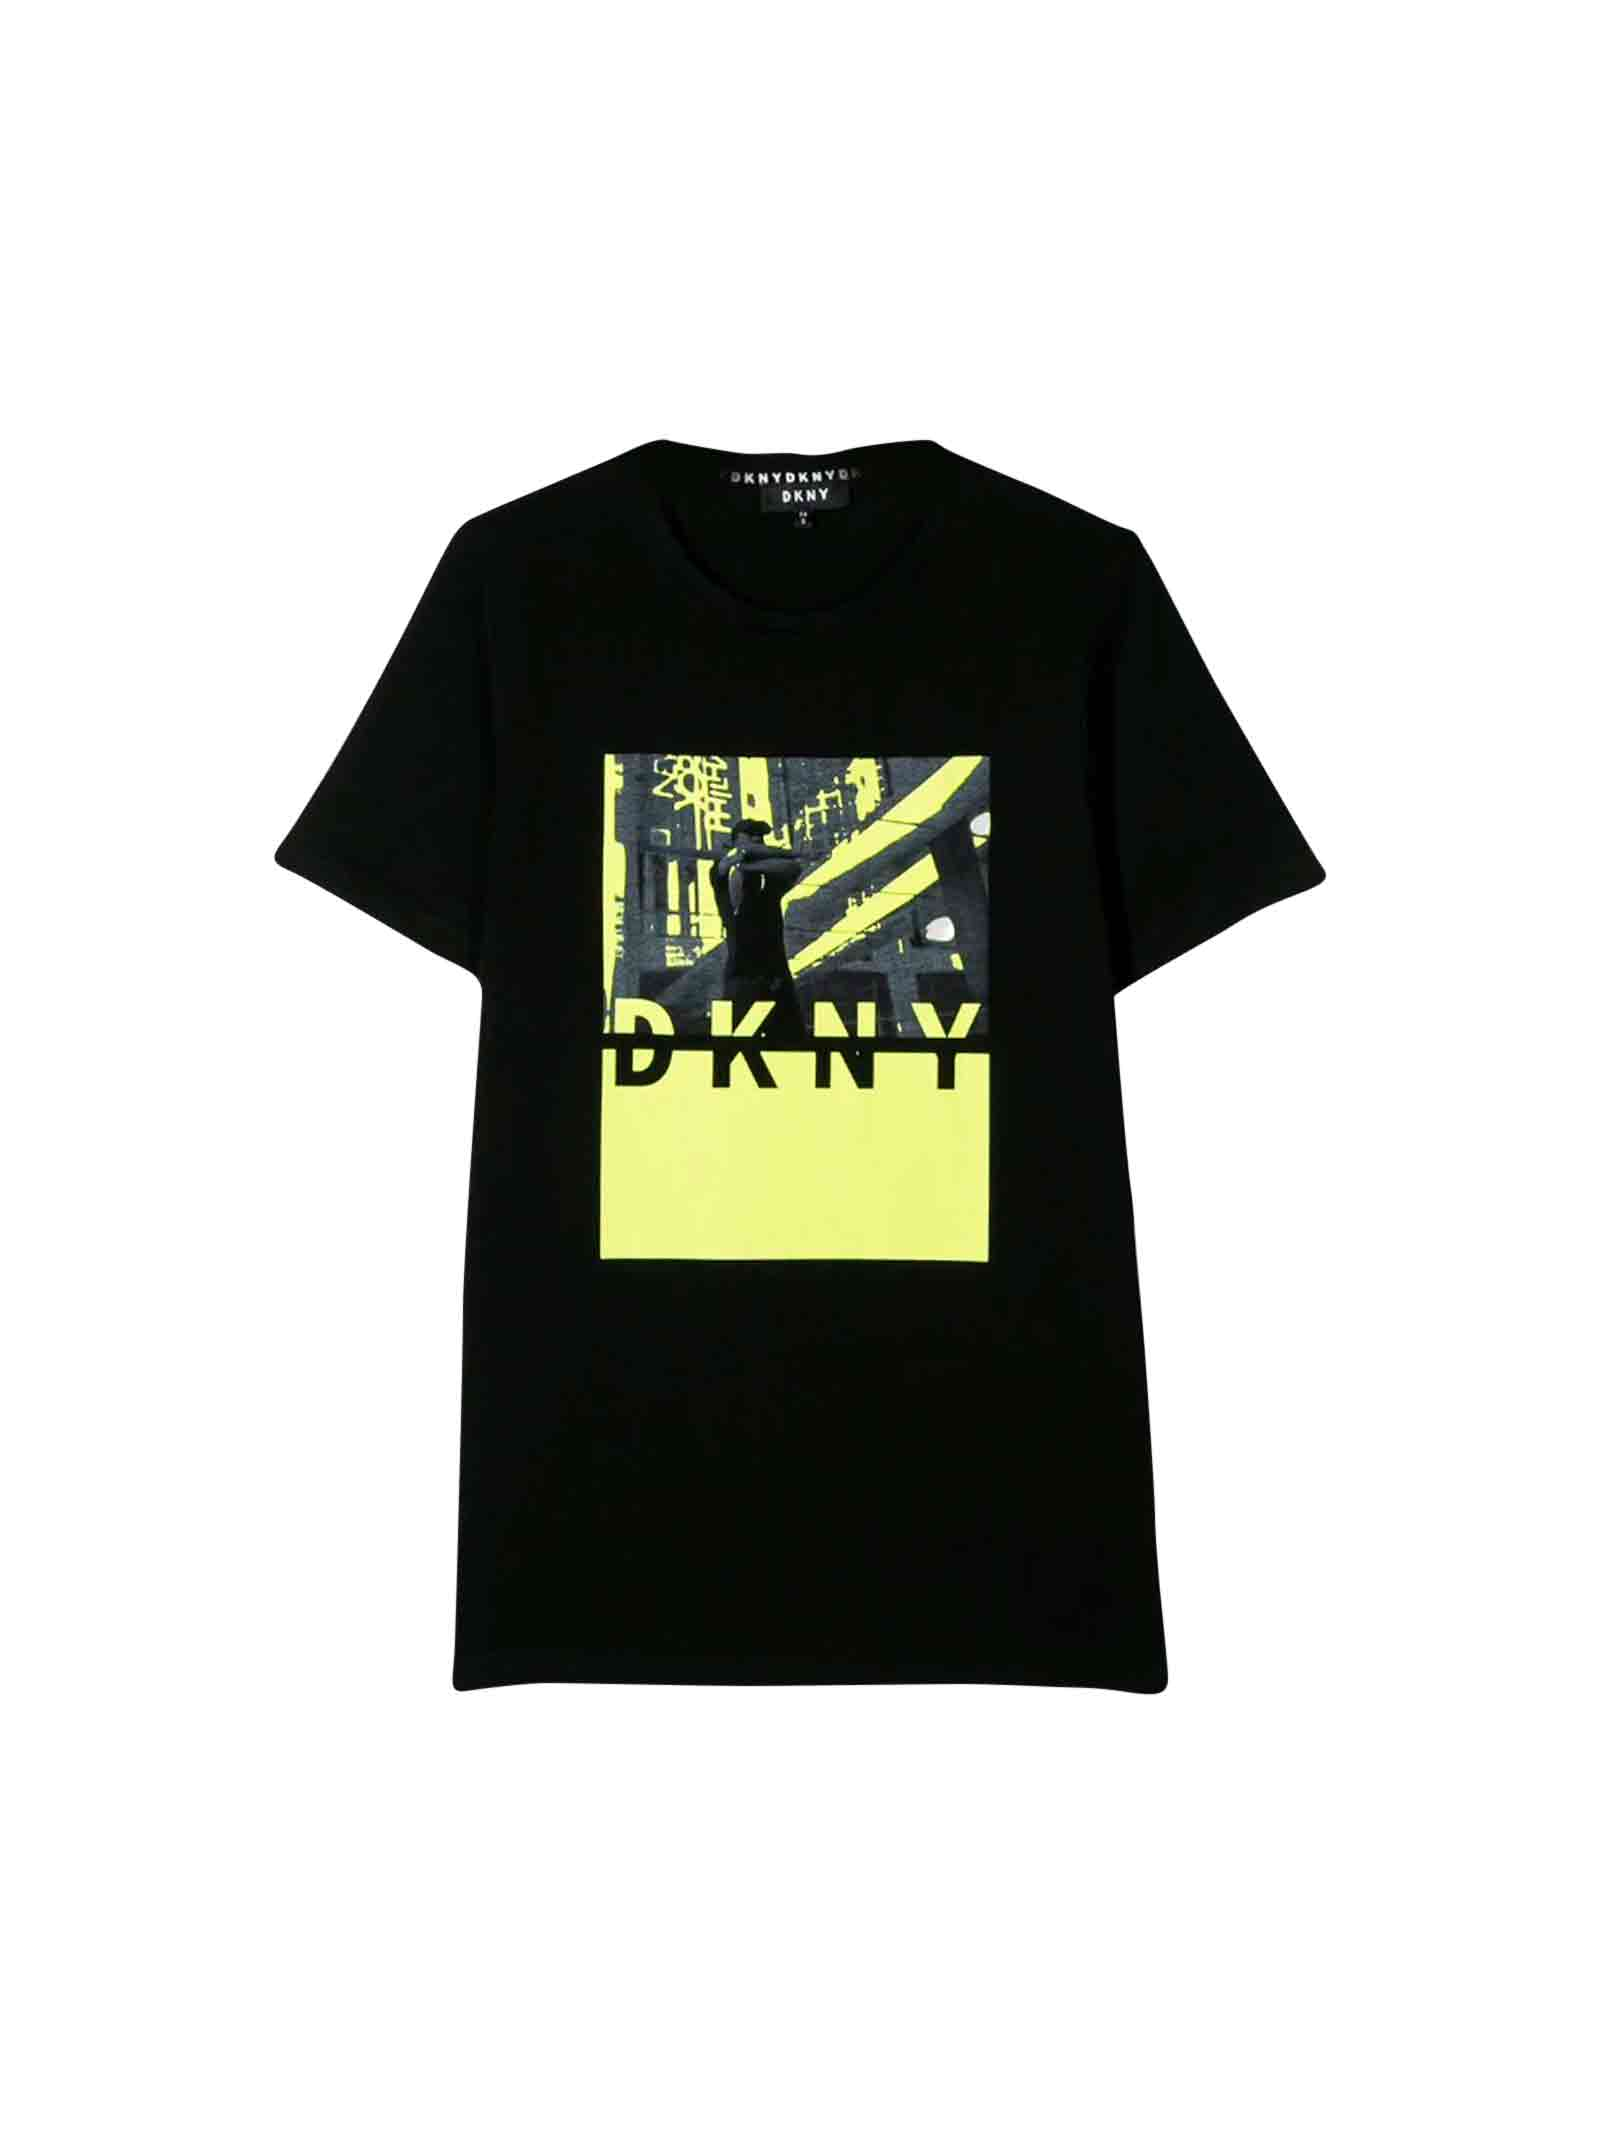 hot-selling genuine crazy price size 40 DKNY Black T-shirt